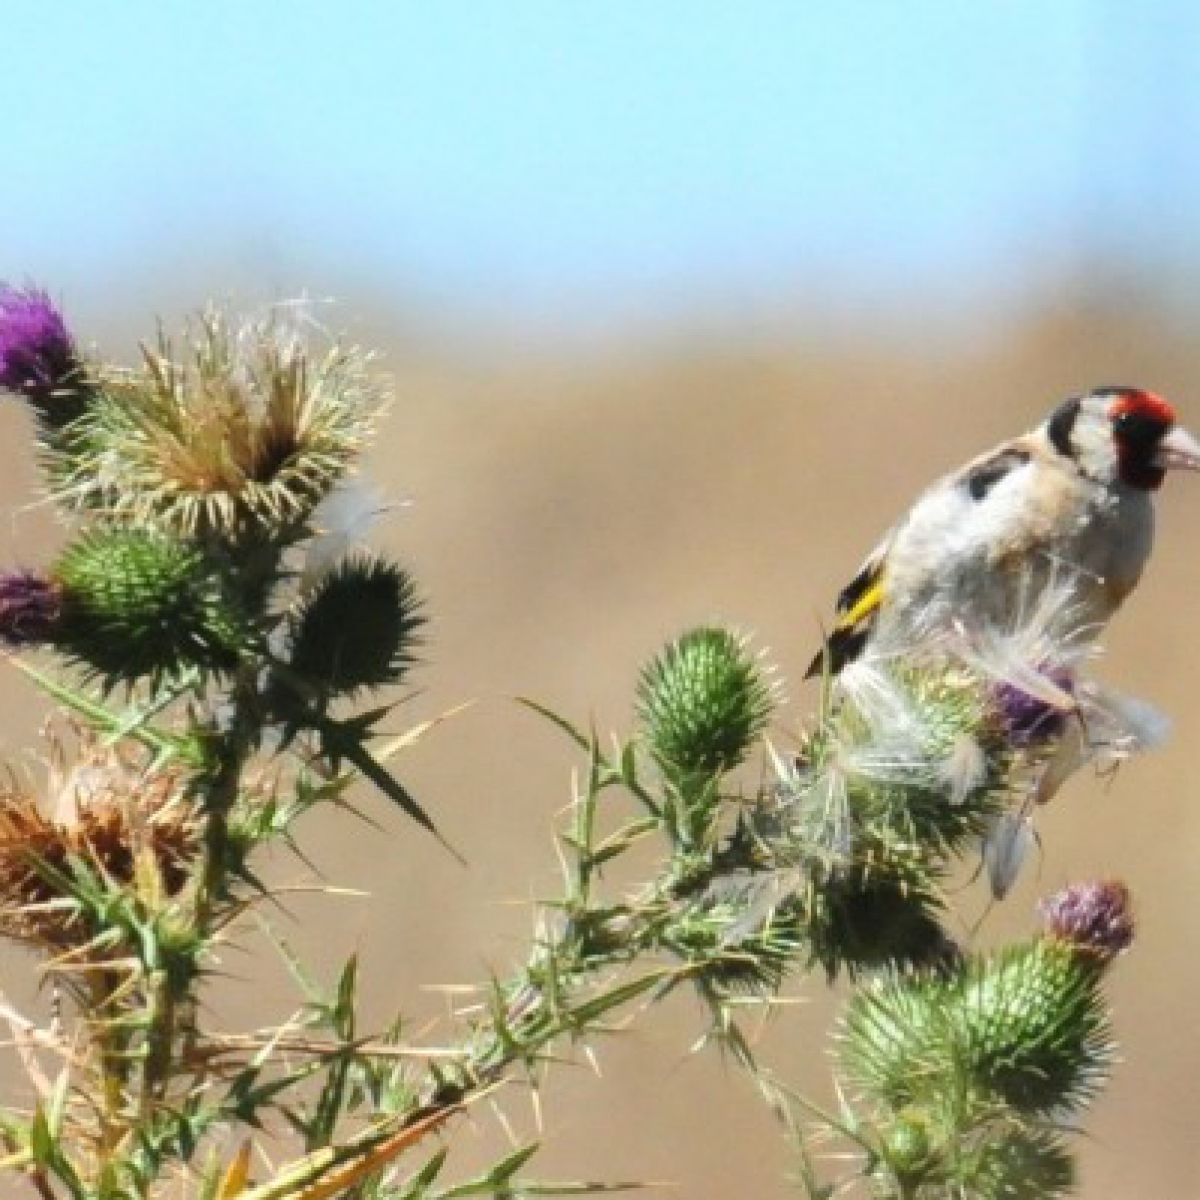 761 European Goldfinch